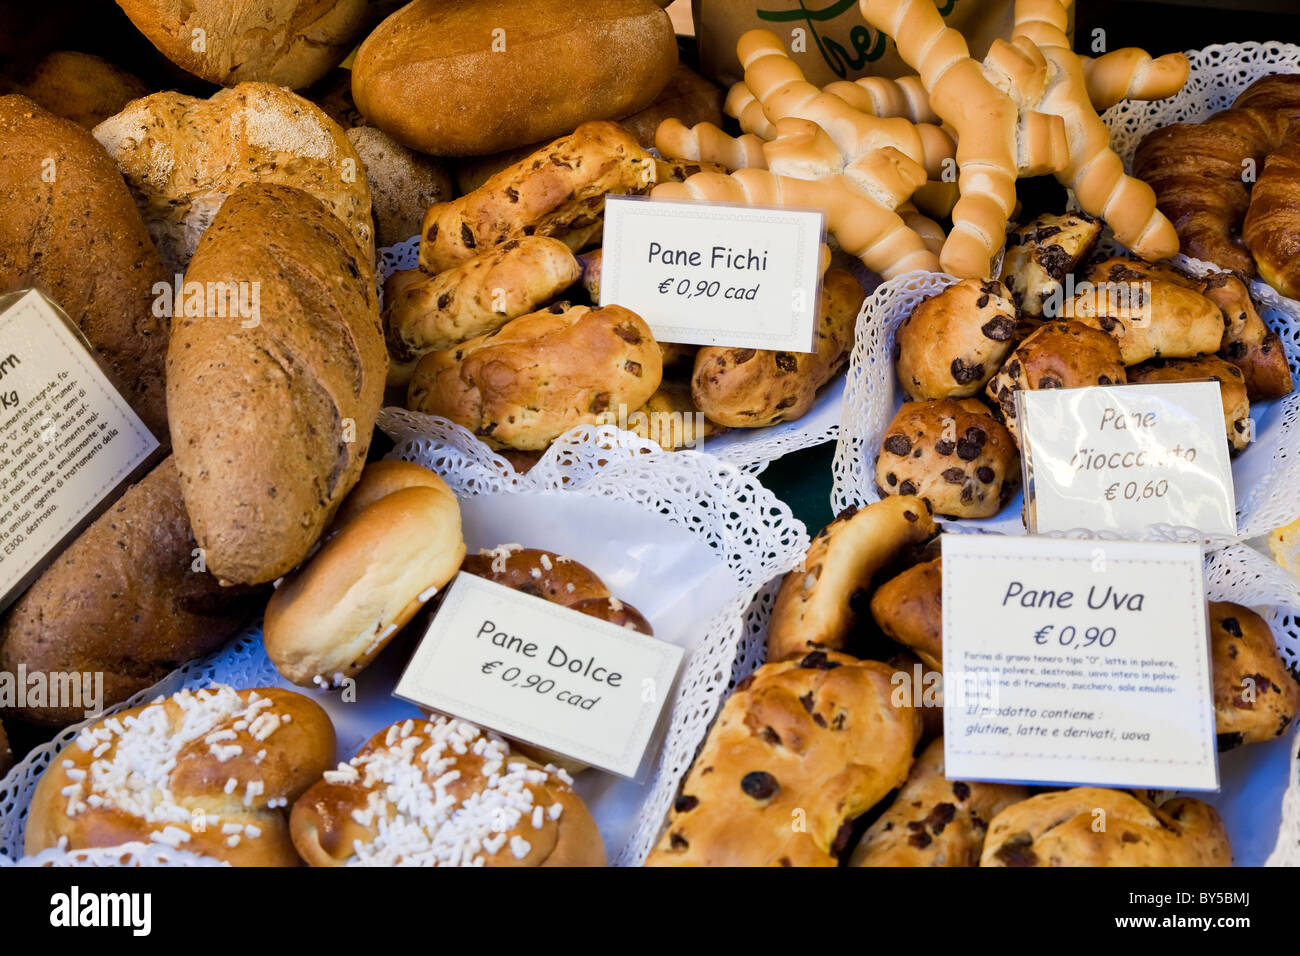 Bread shop window, Bergamo, Lombardy, Italy Stock Photo